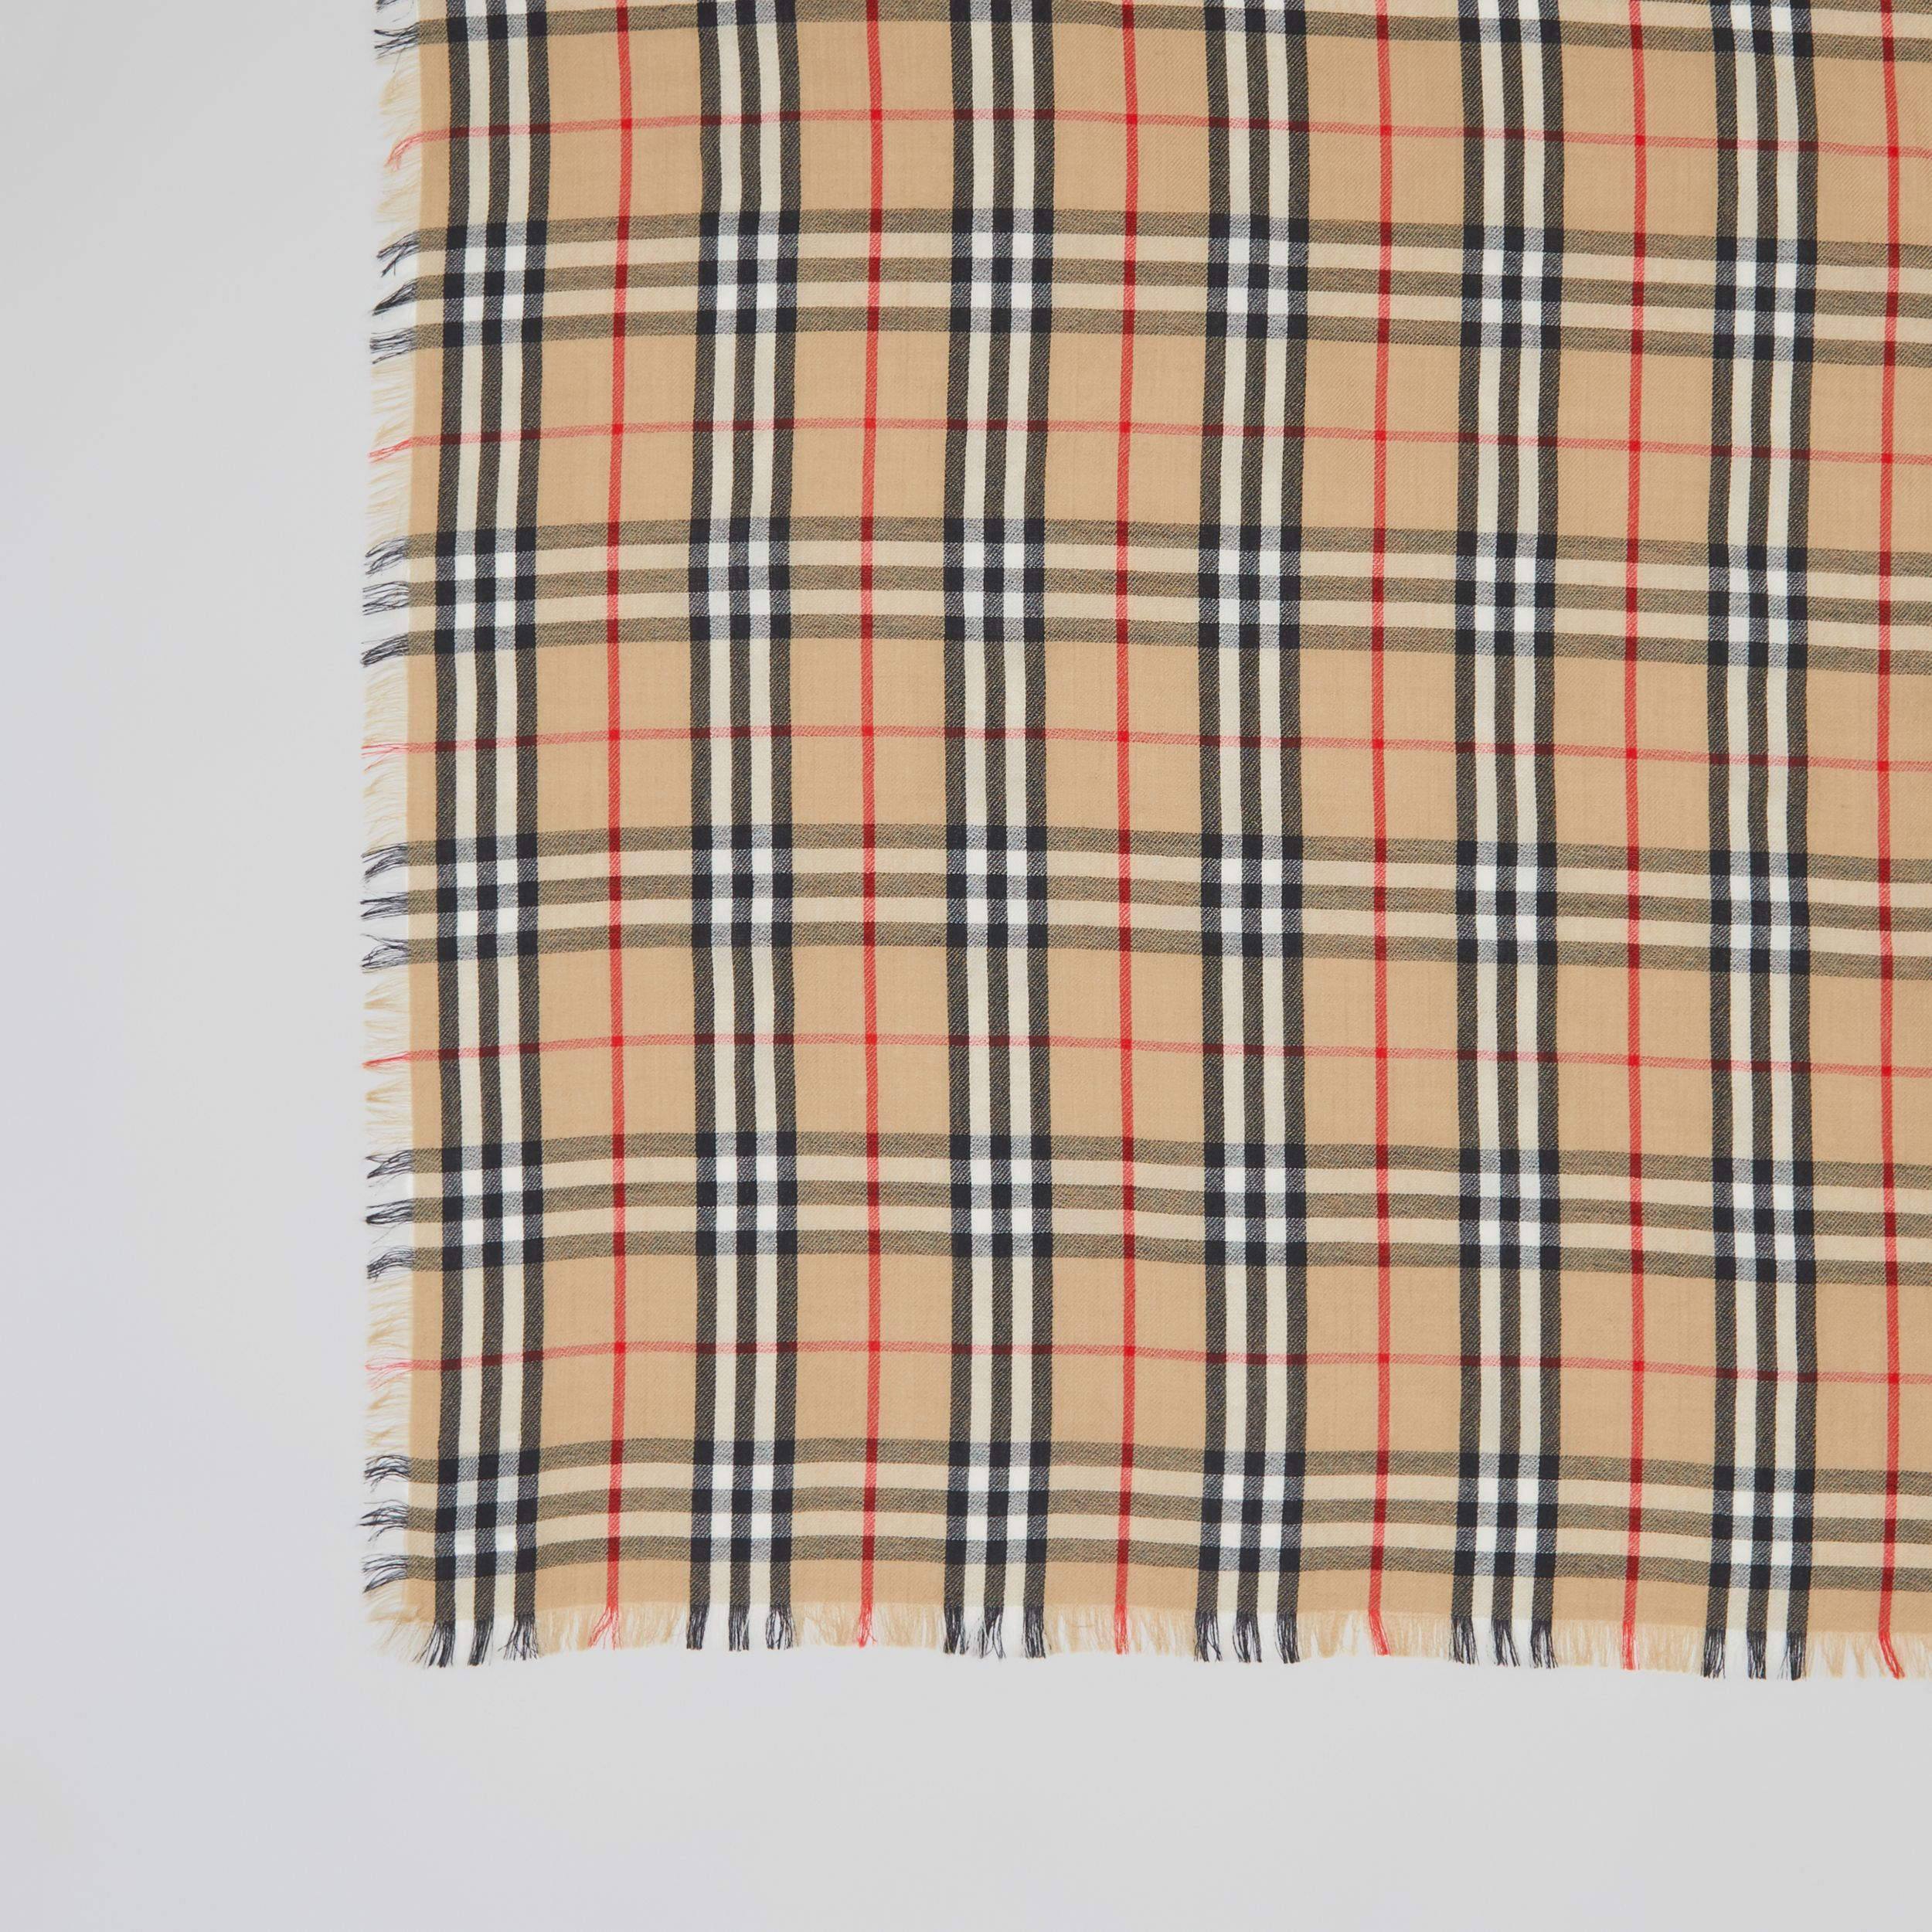 Vintage Check Lightweight Cashmere Scarf in Archive Beige | Burberry - 2